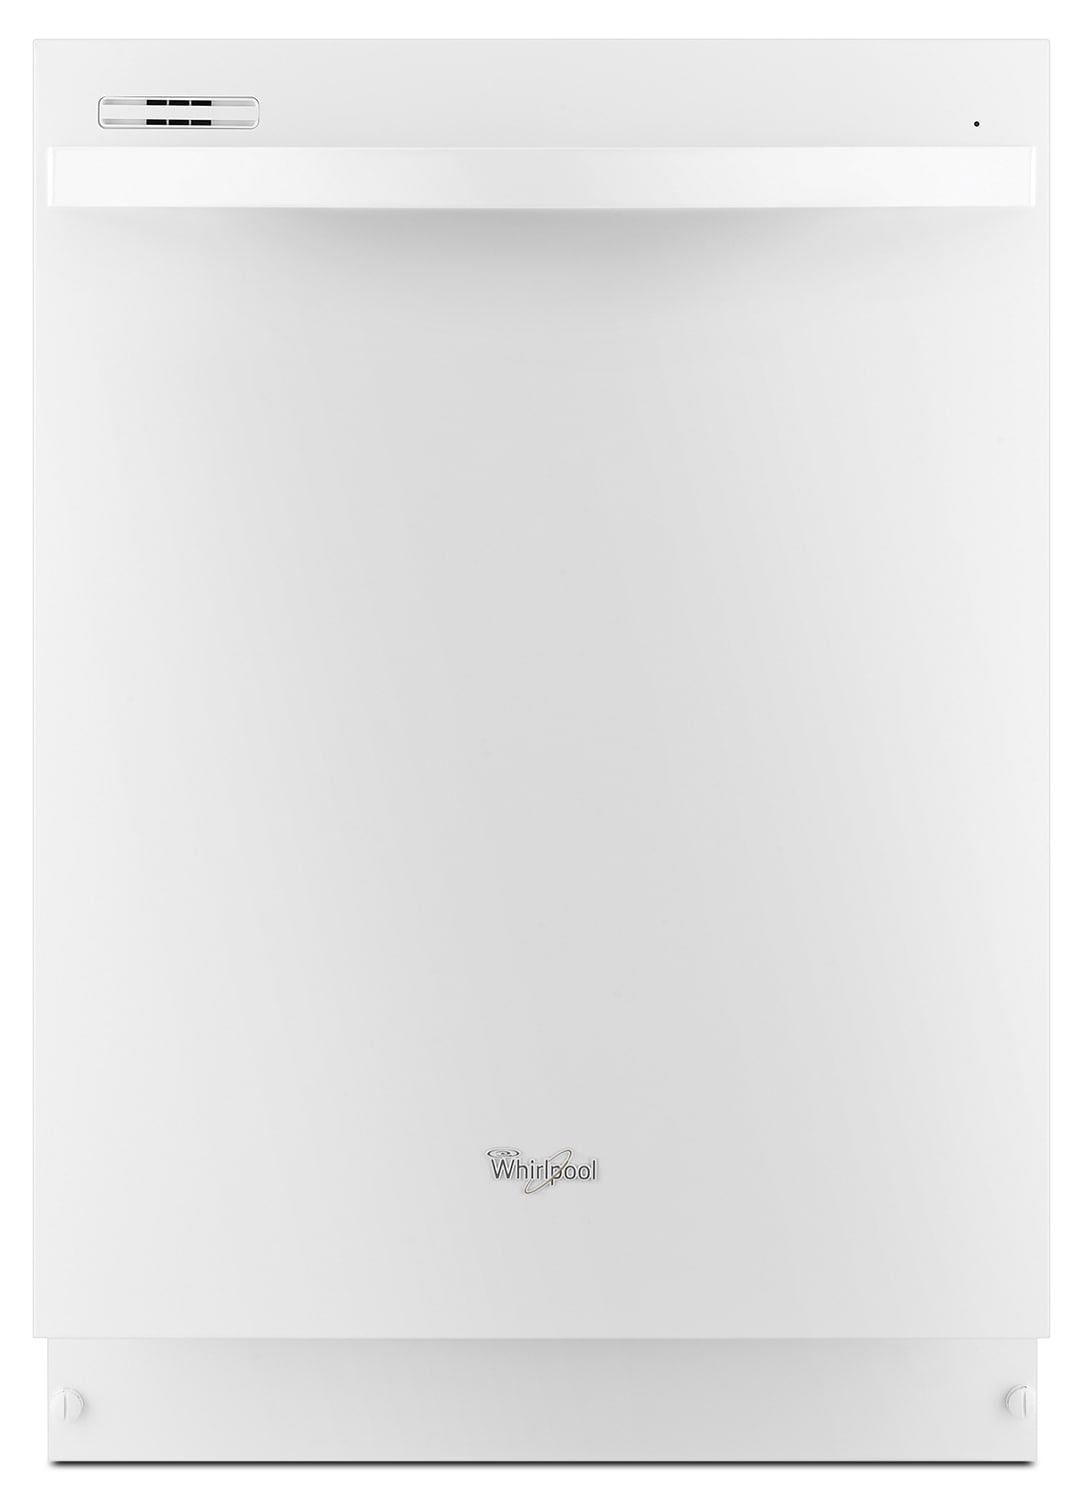 Whirlpool Gold® Built-In Dishwasher – White